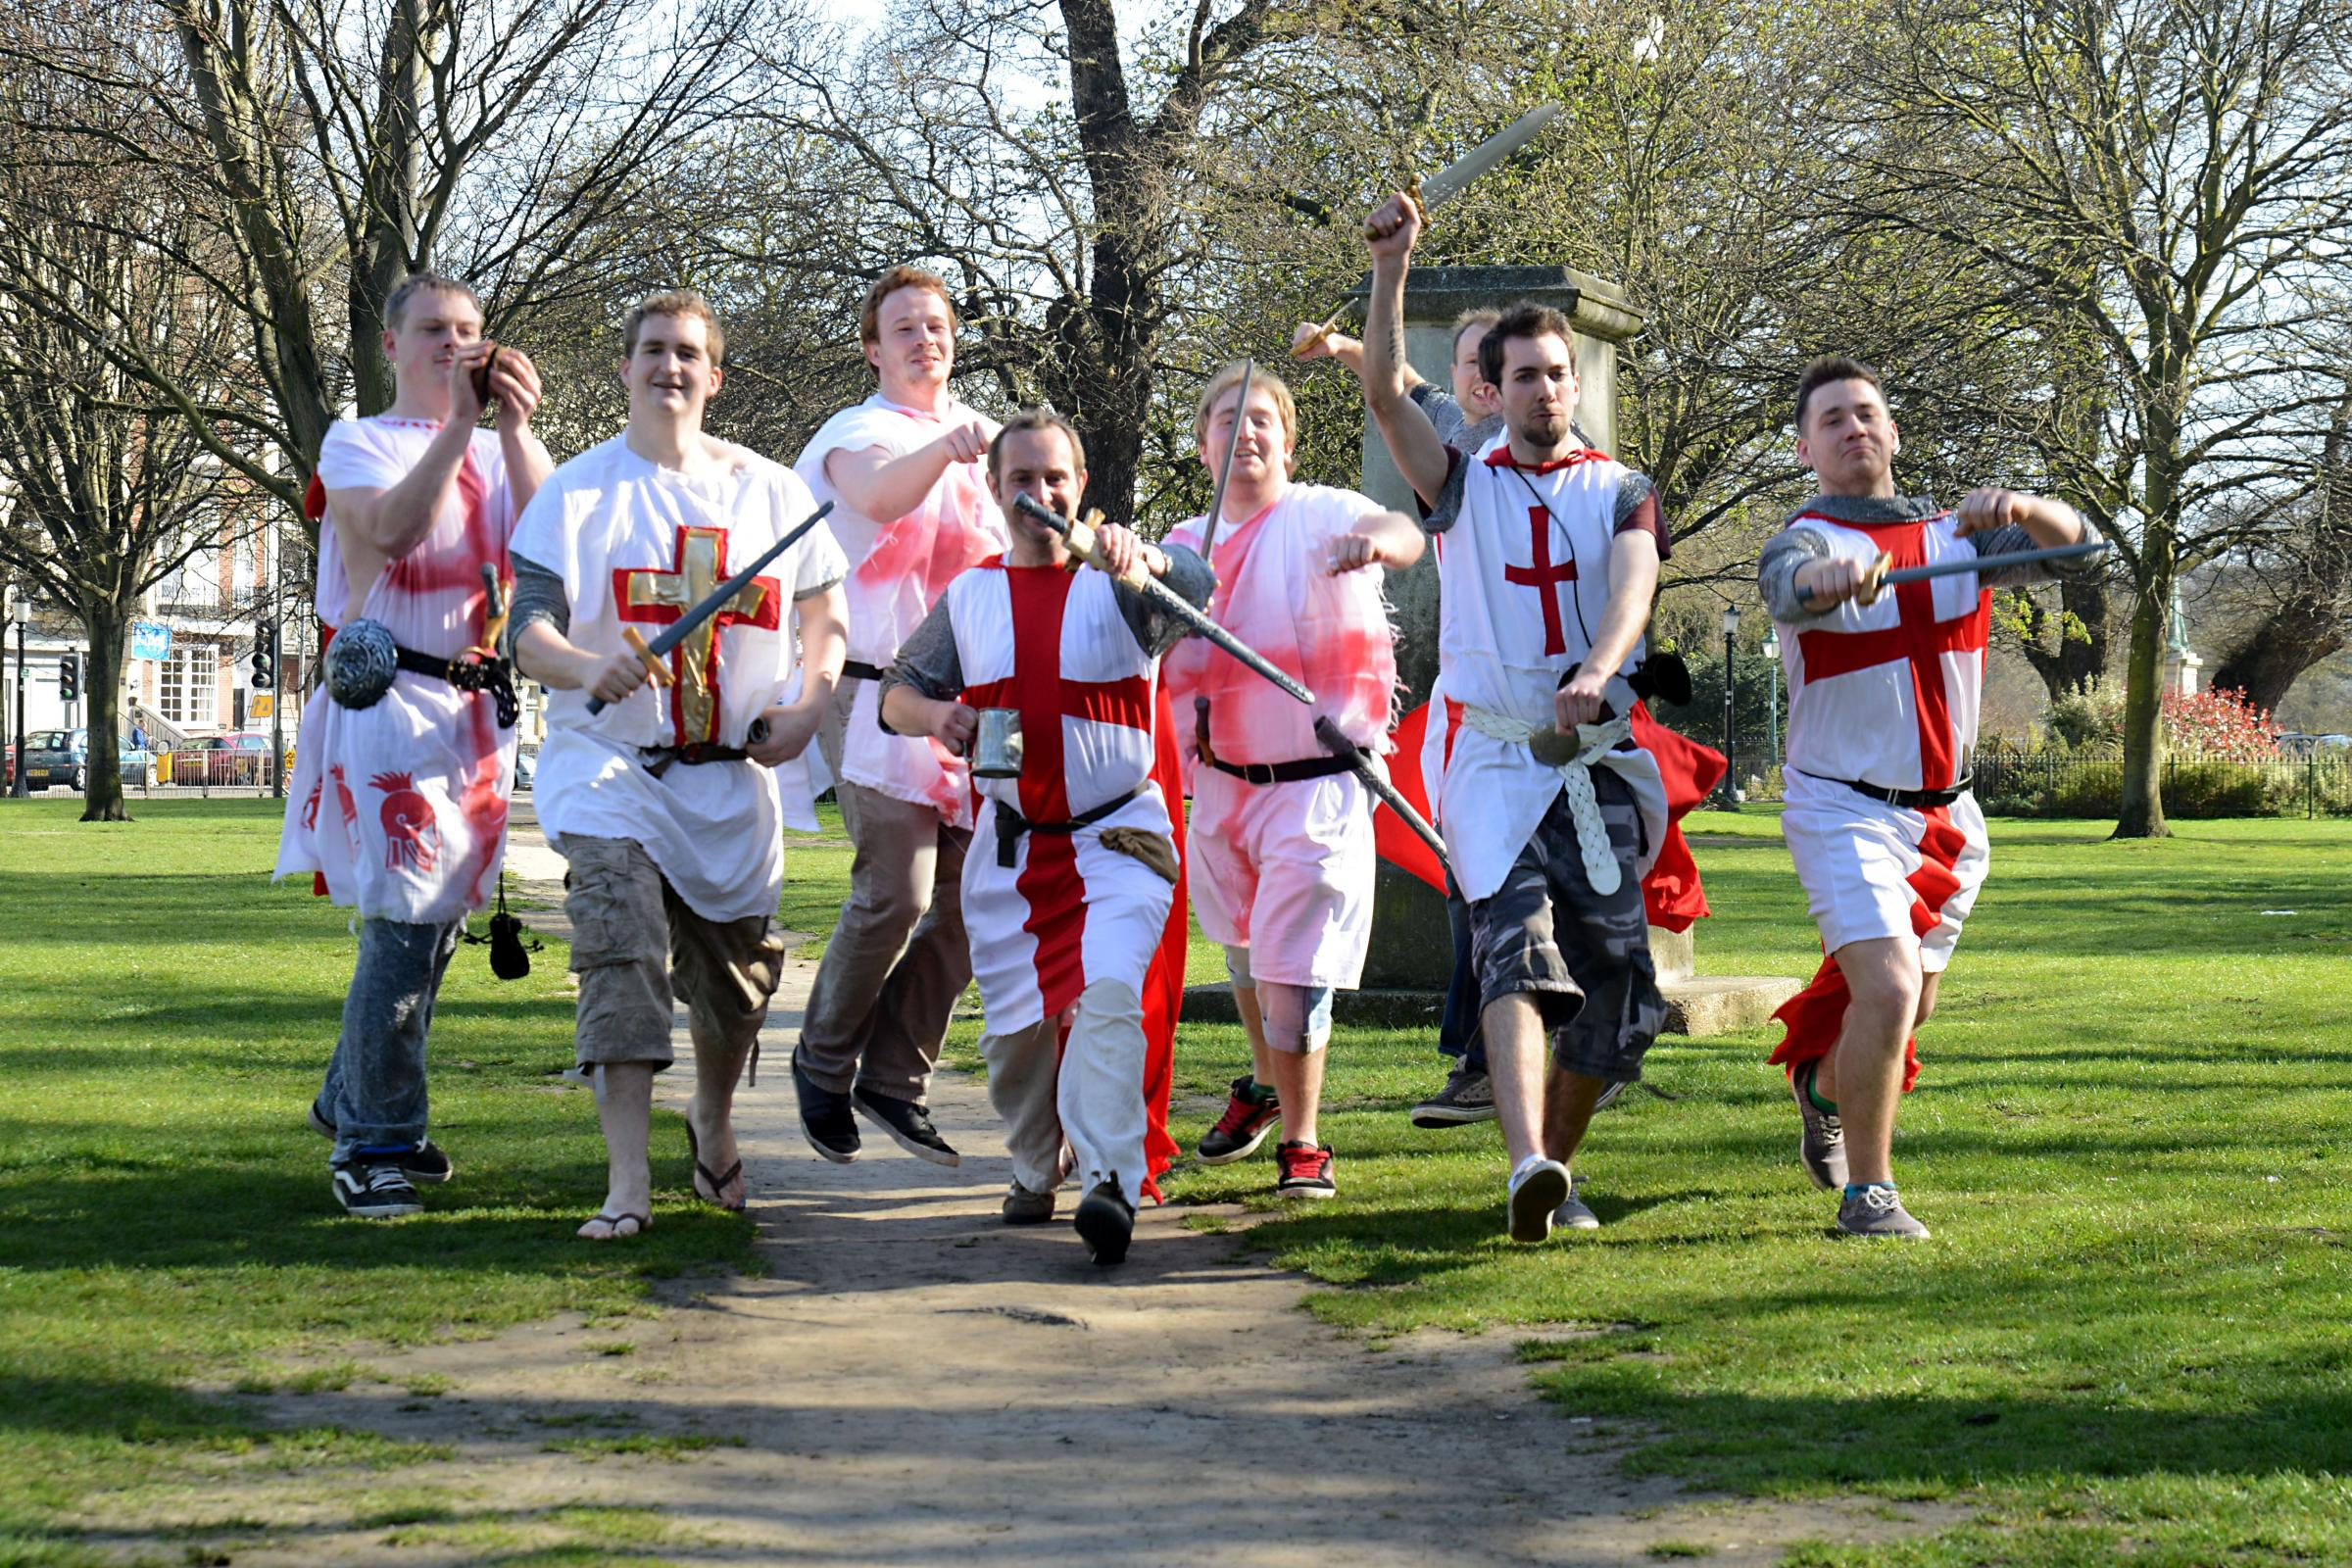 St George's Day in Southampton